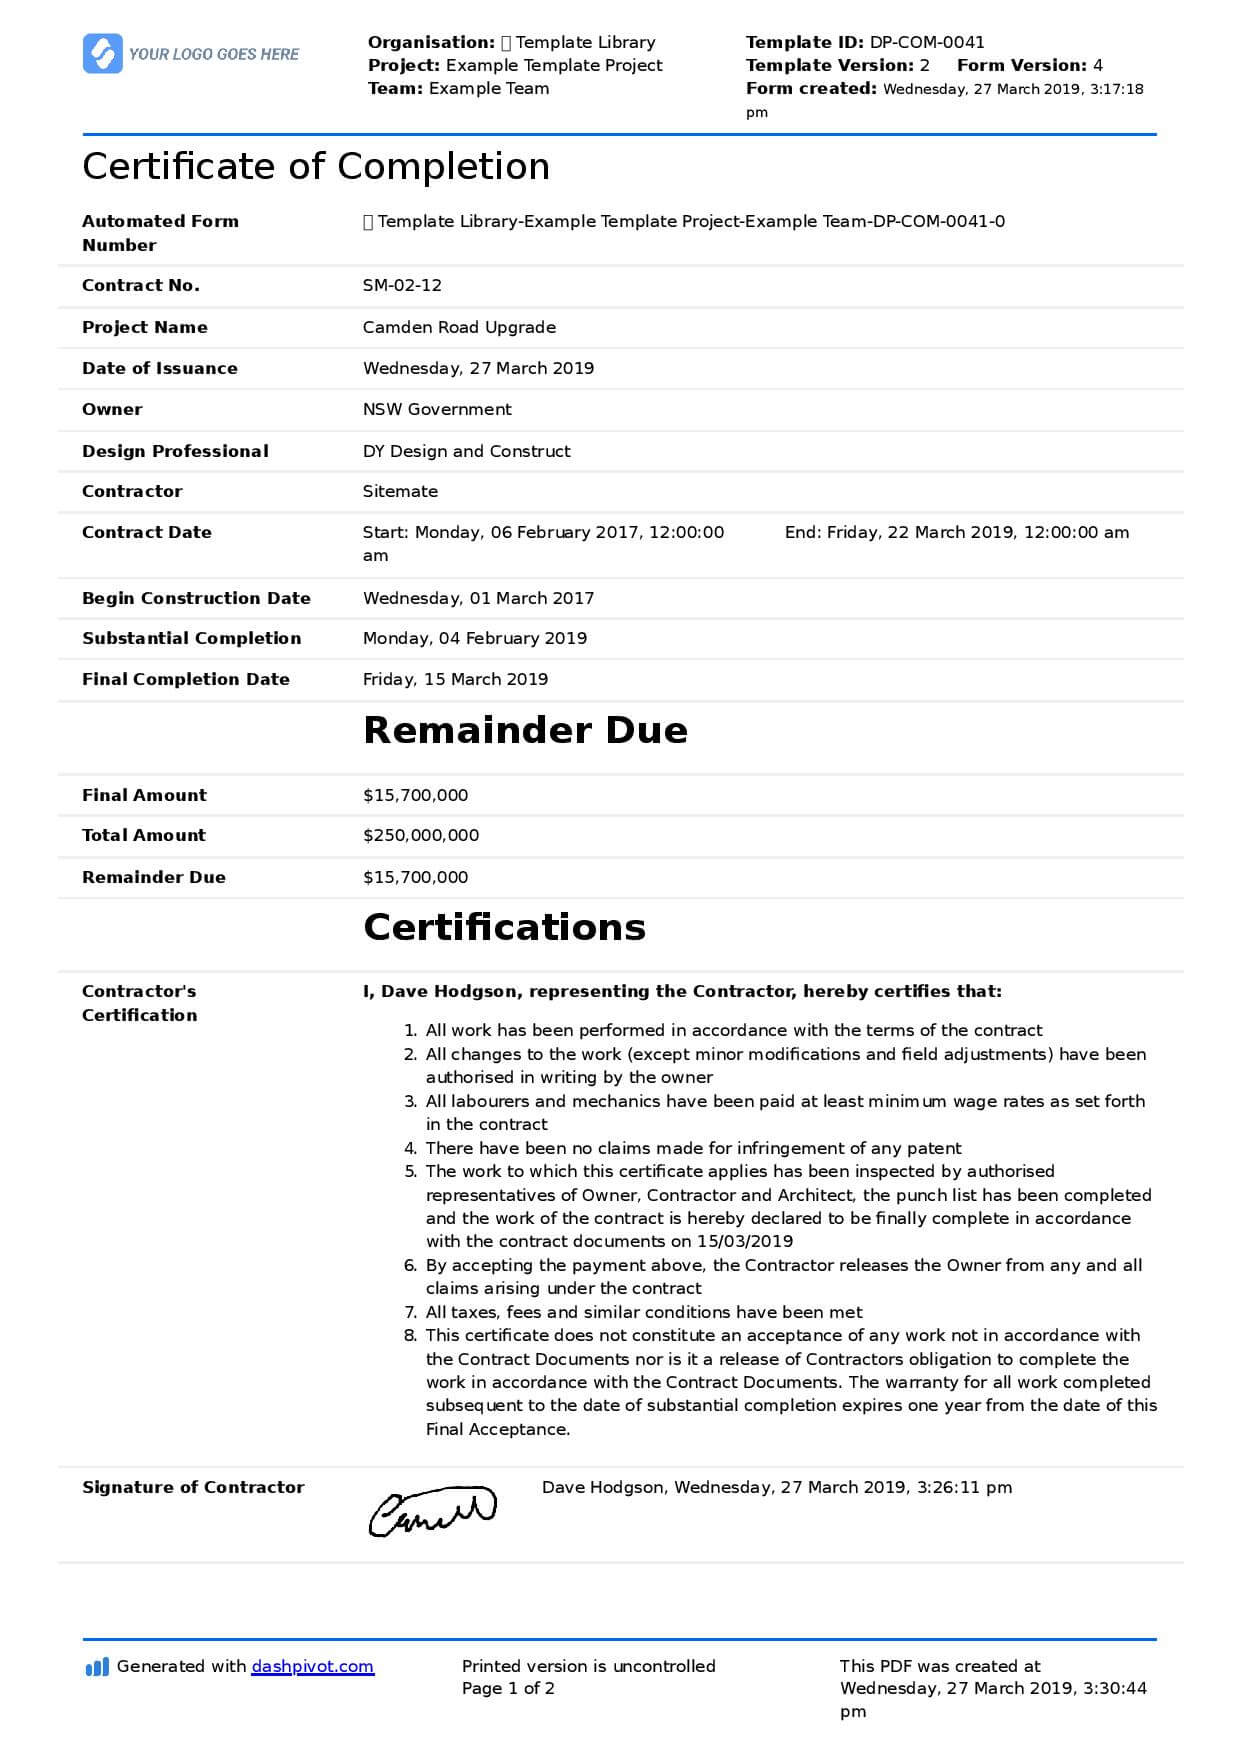 Certificate Of Completion For Construction (Free Template + For Construction Certificate Of Completion Template